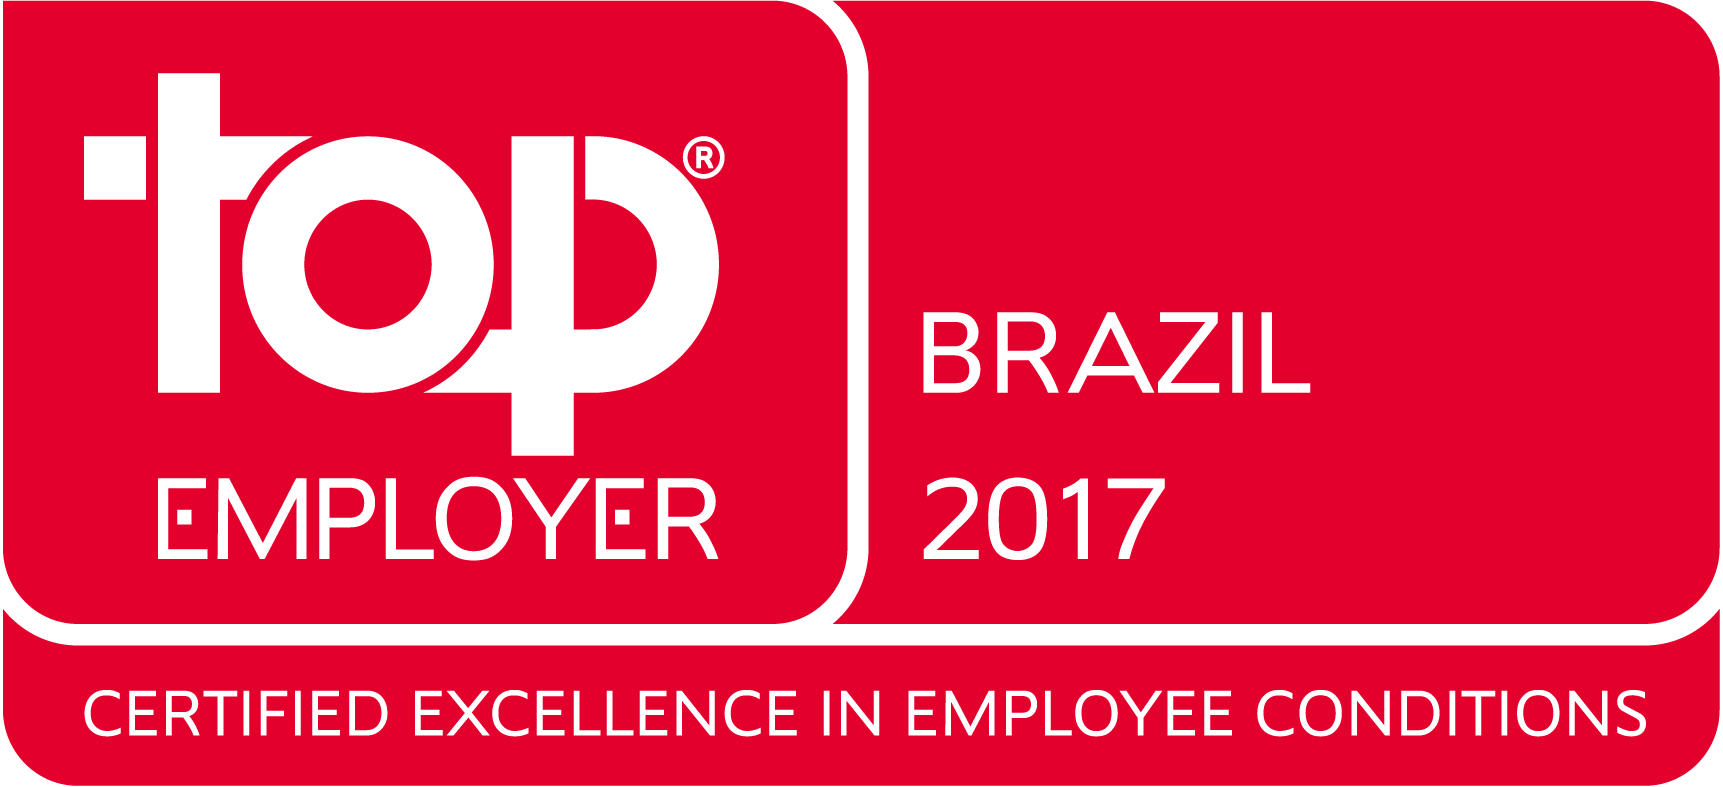 2017 Top Employer Brazil logo